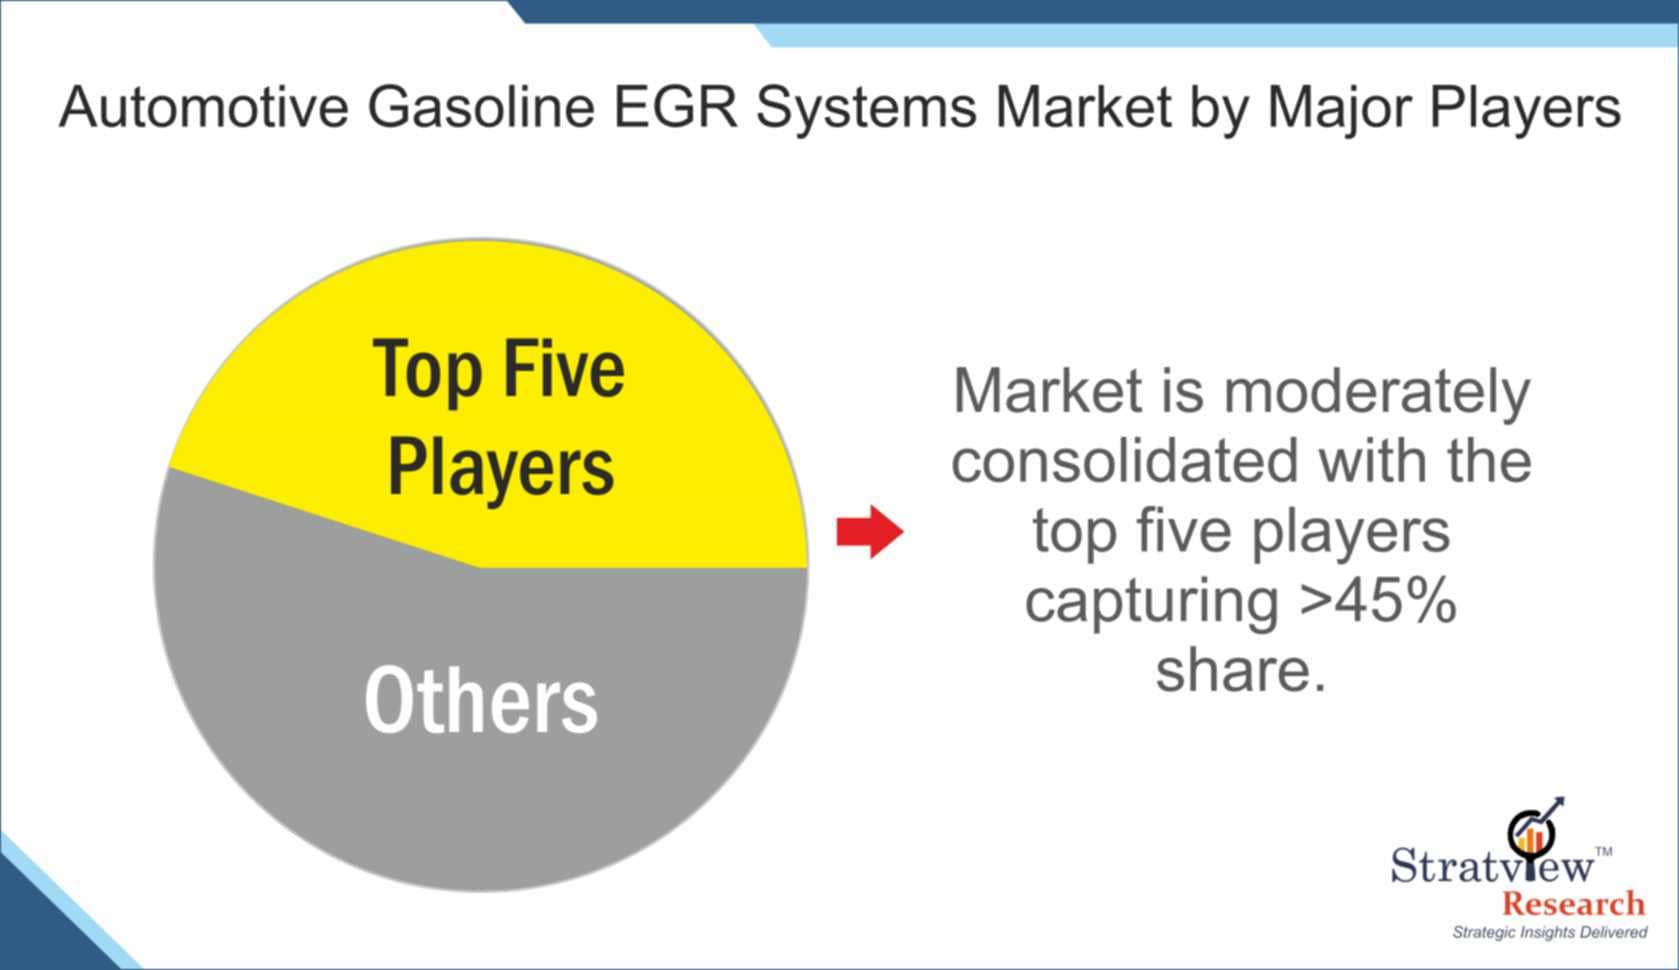 Automotive Gasoline EGR System Market Share